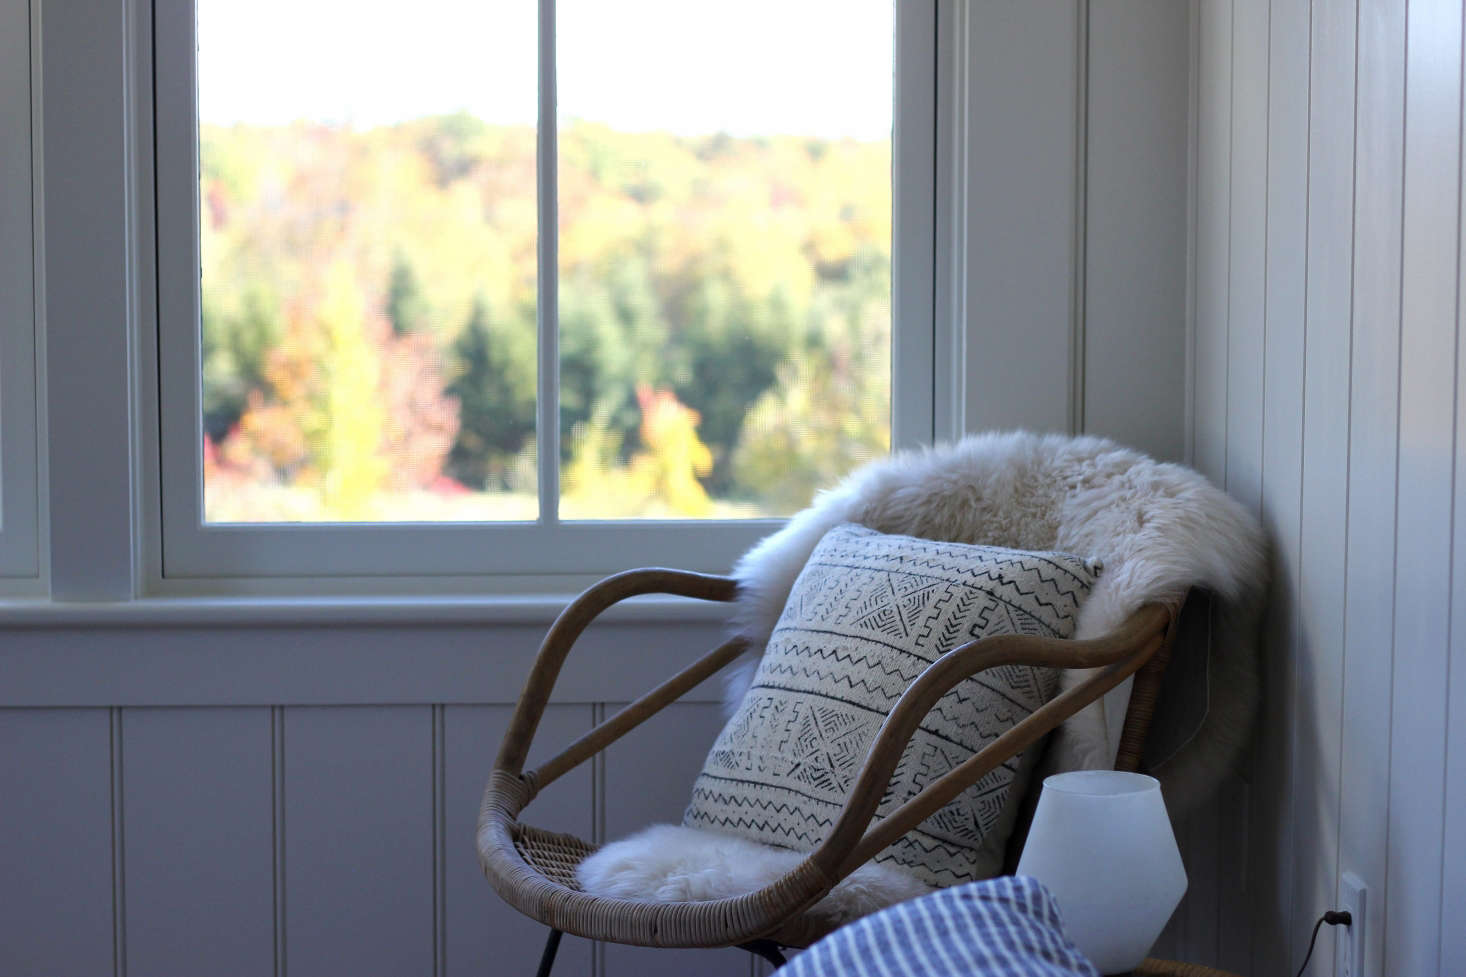 New house remodel in Maine by Jersey Ice Cream Co., glam